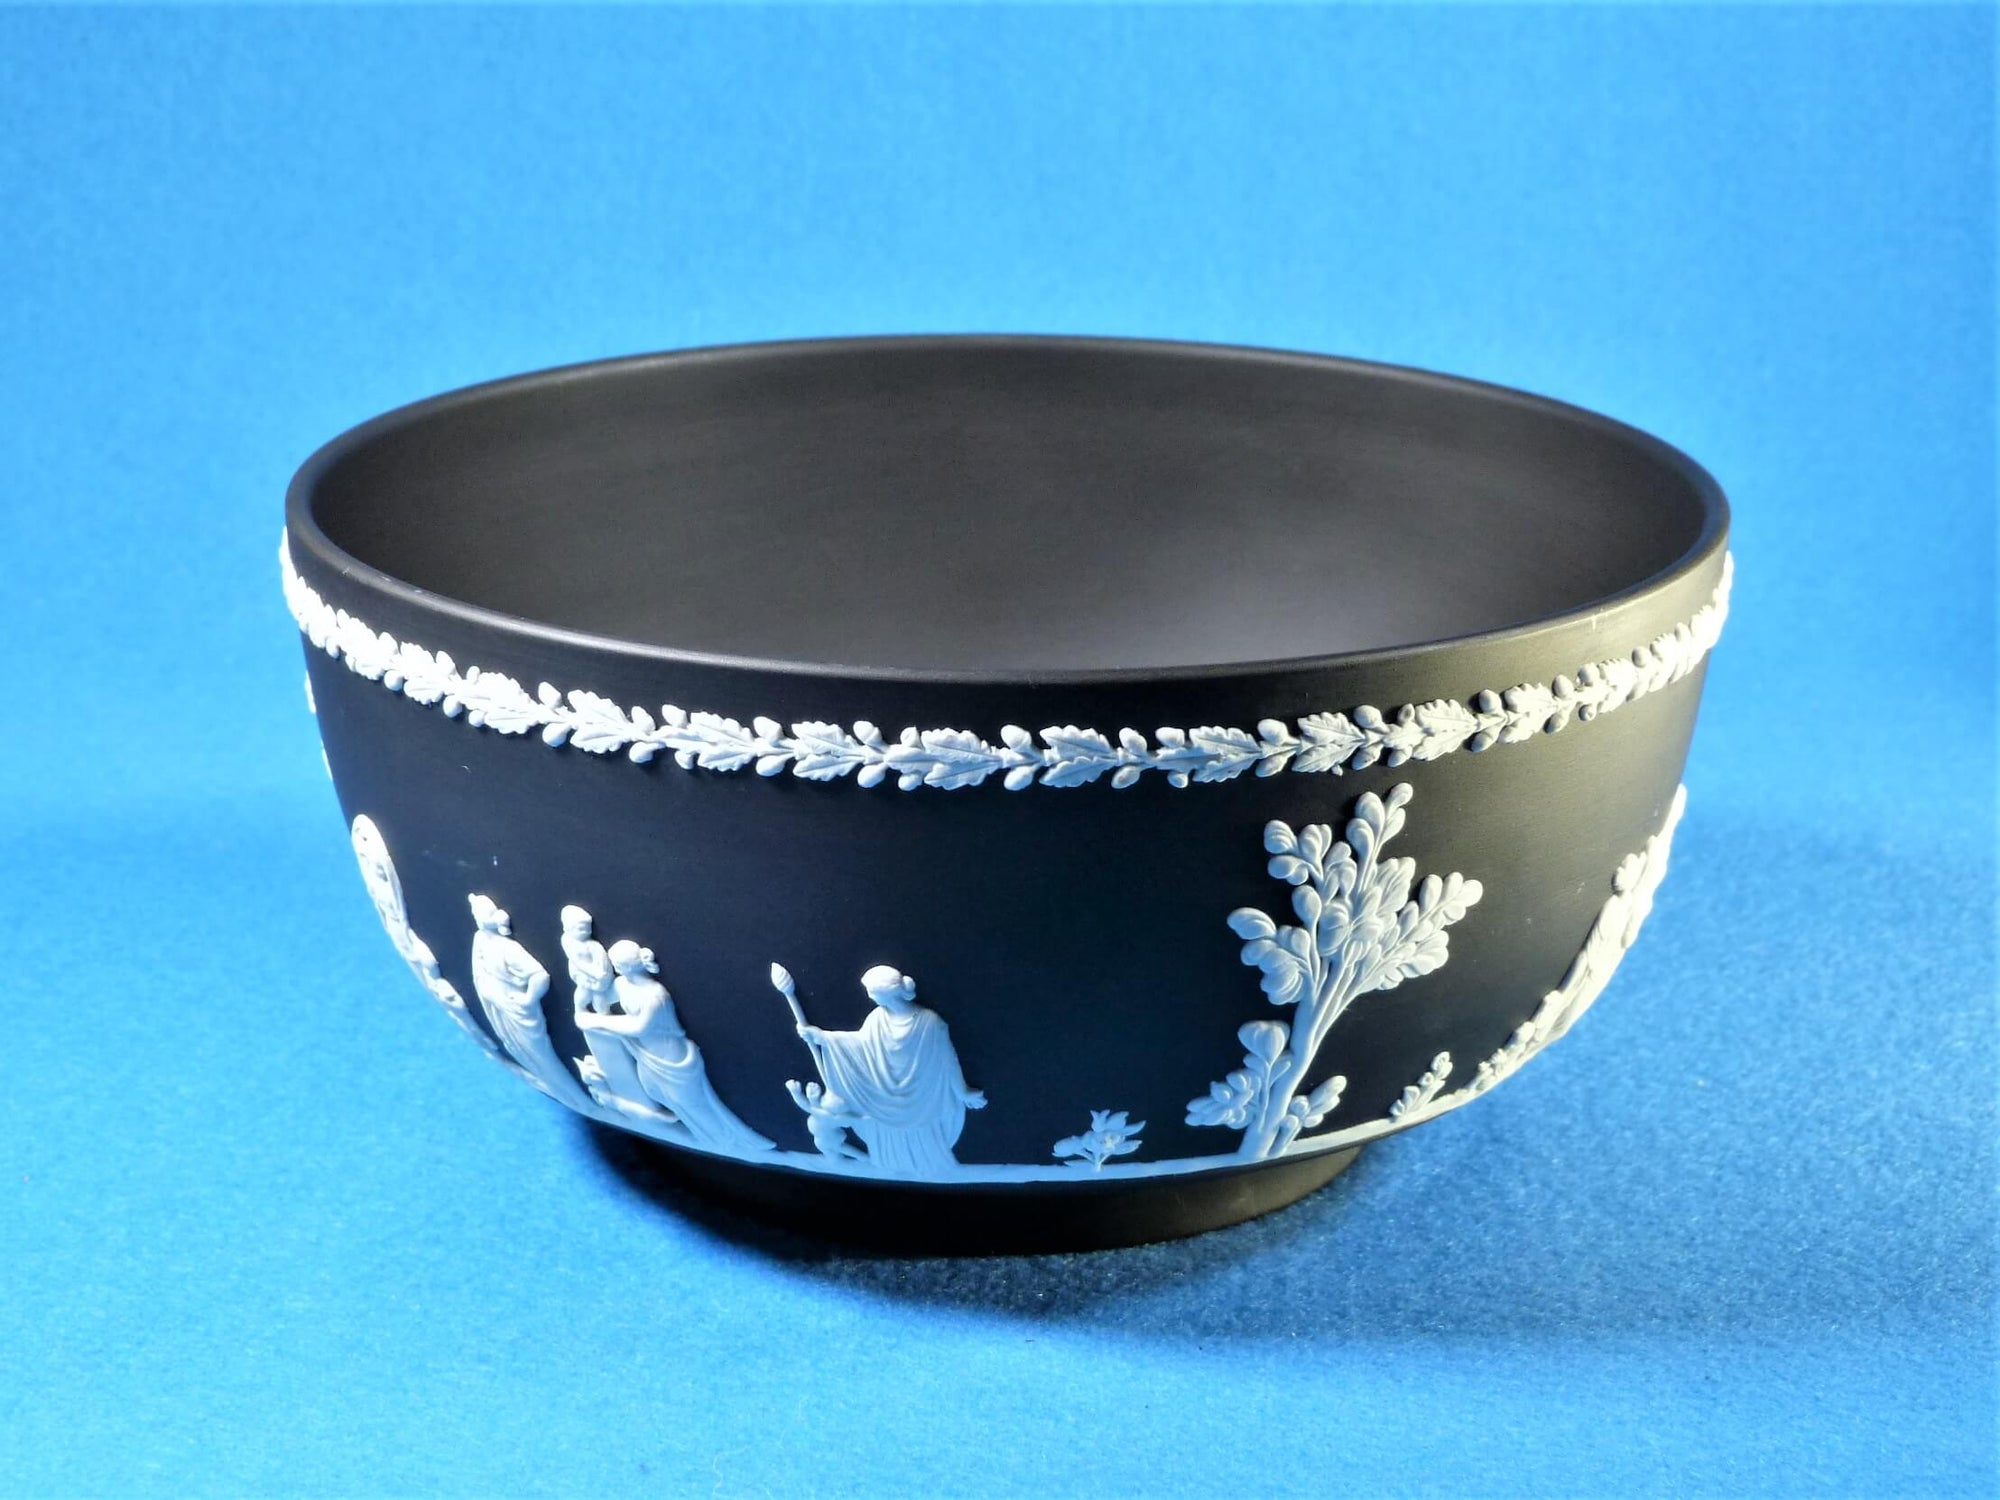 Wedgwood Jasperware Bowl, Black Jasperware Fruit Bowl, Superb